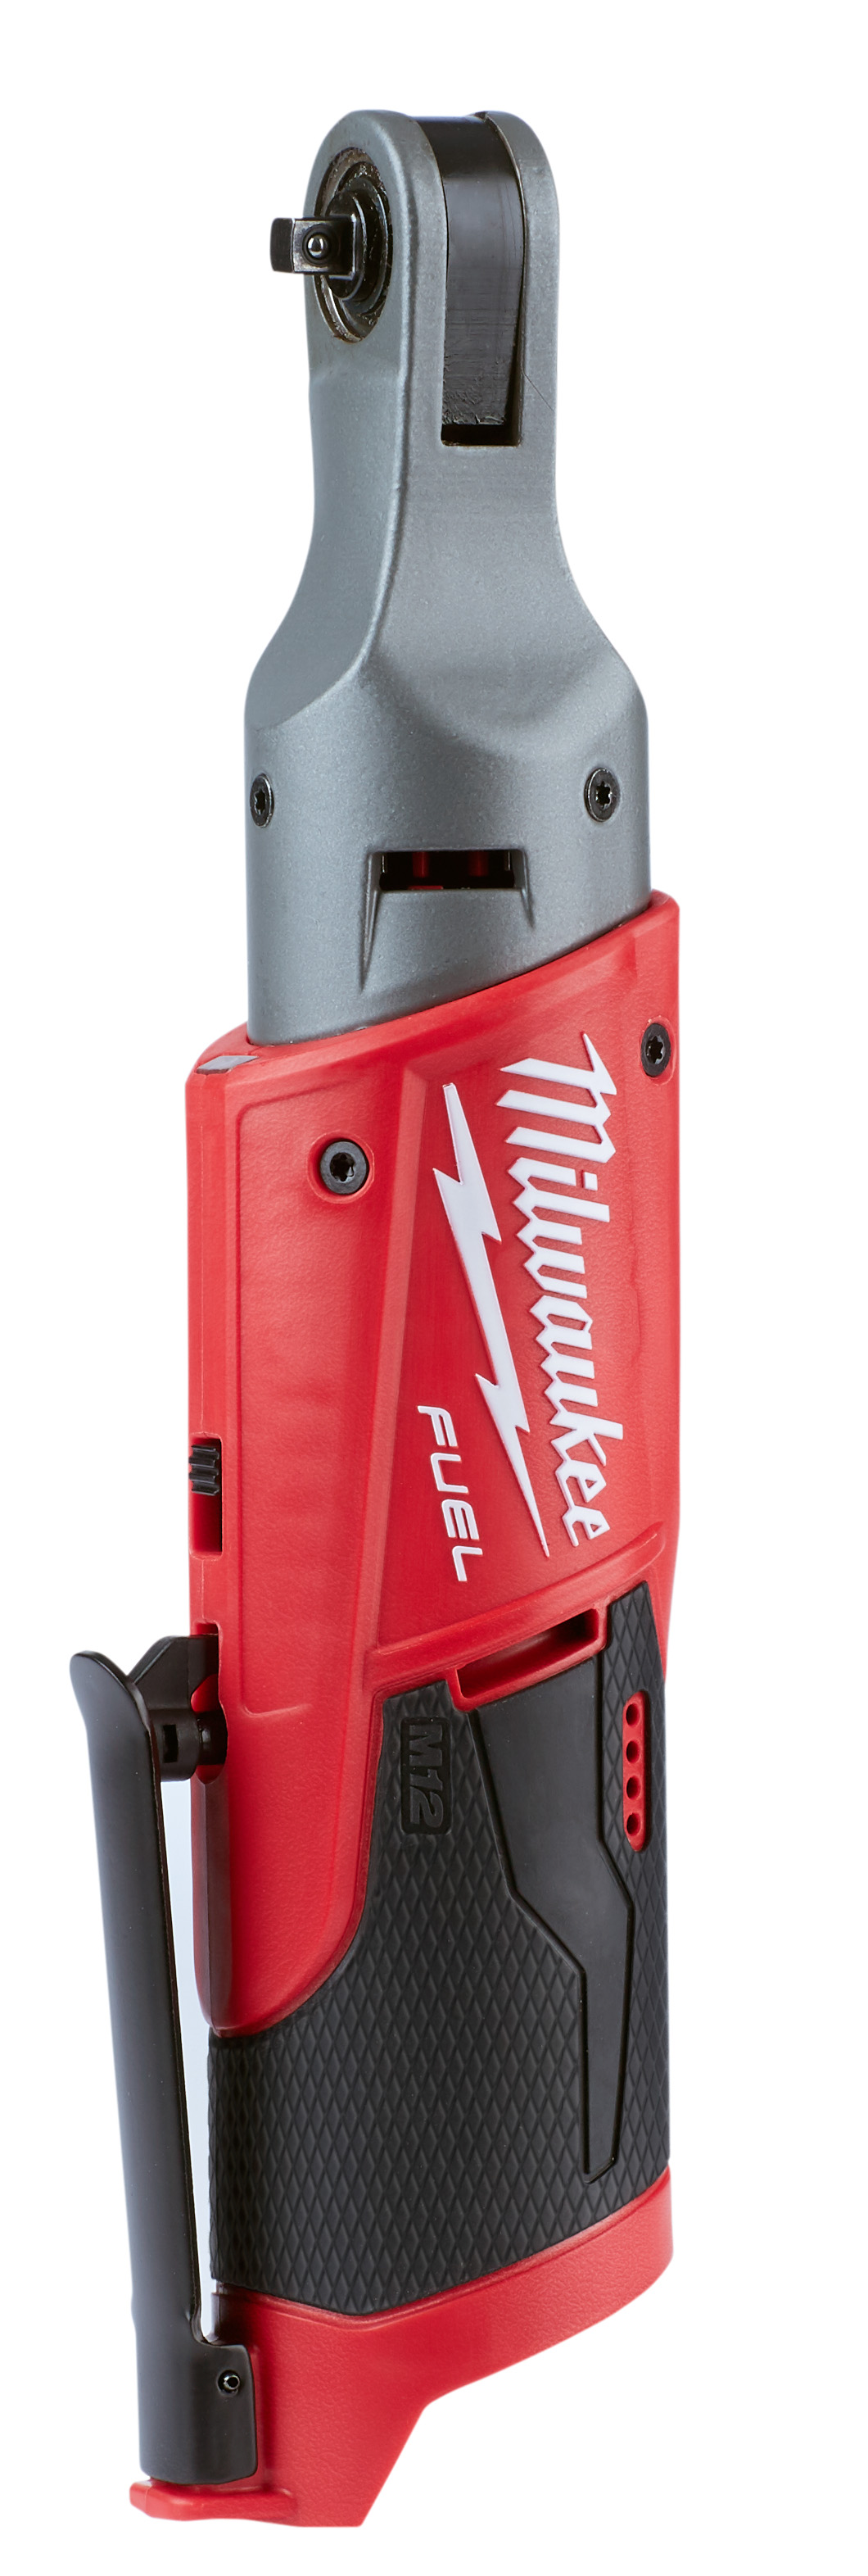 Milwaukee® M12 FUEL™ 2556-20 Cordless Ratchet, 1/4 in Drive, 40 ft-lb, 0 to 250 rpm, 12 VDC, Lithium-Ion Battery, 3.65 in OAL